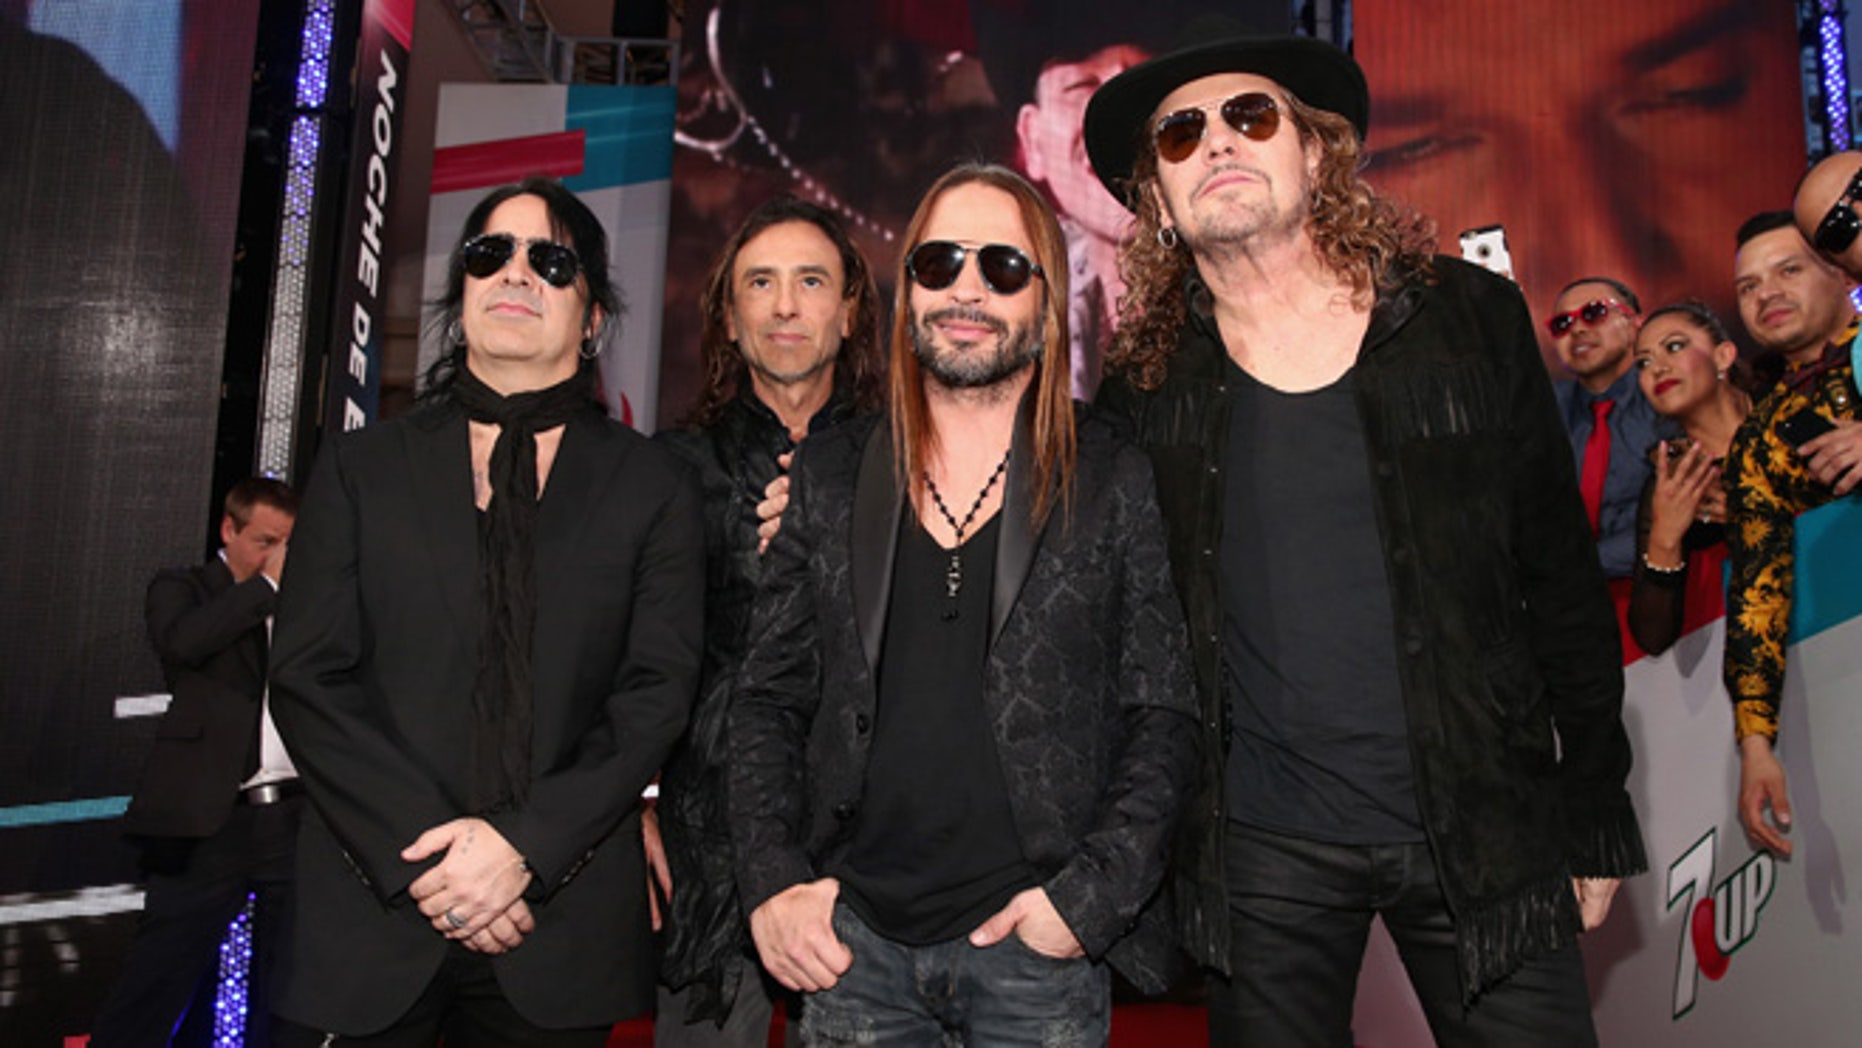 Alex Gonzalez, Juan Calleros, Sergio Vallin and Fher Olvera of Mana on November 19, 2015 in Las Vegas.